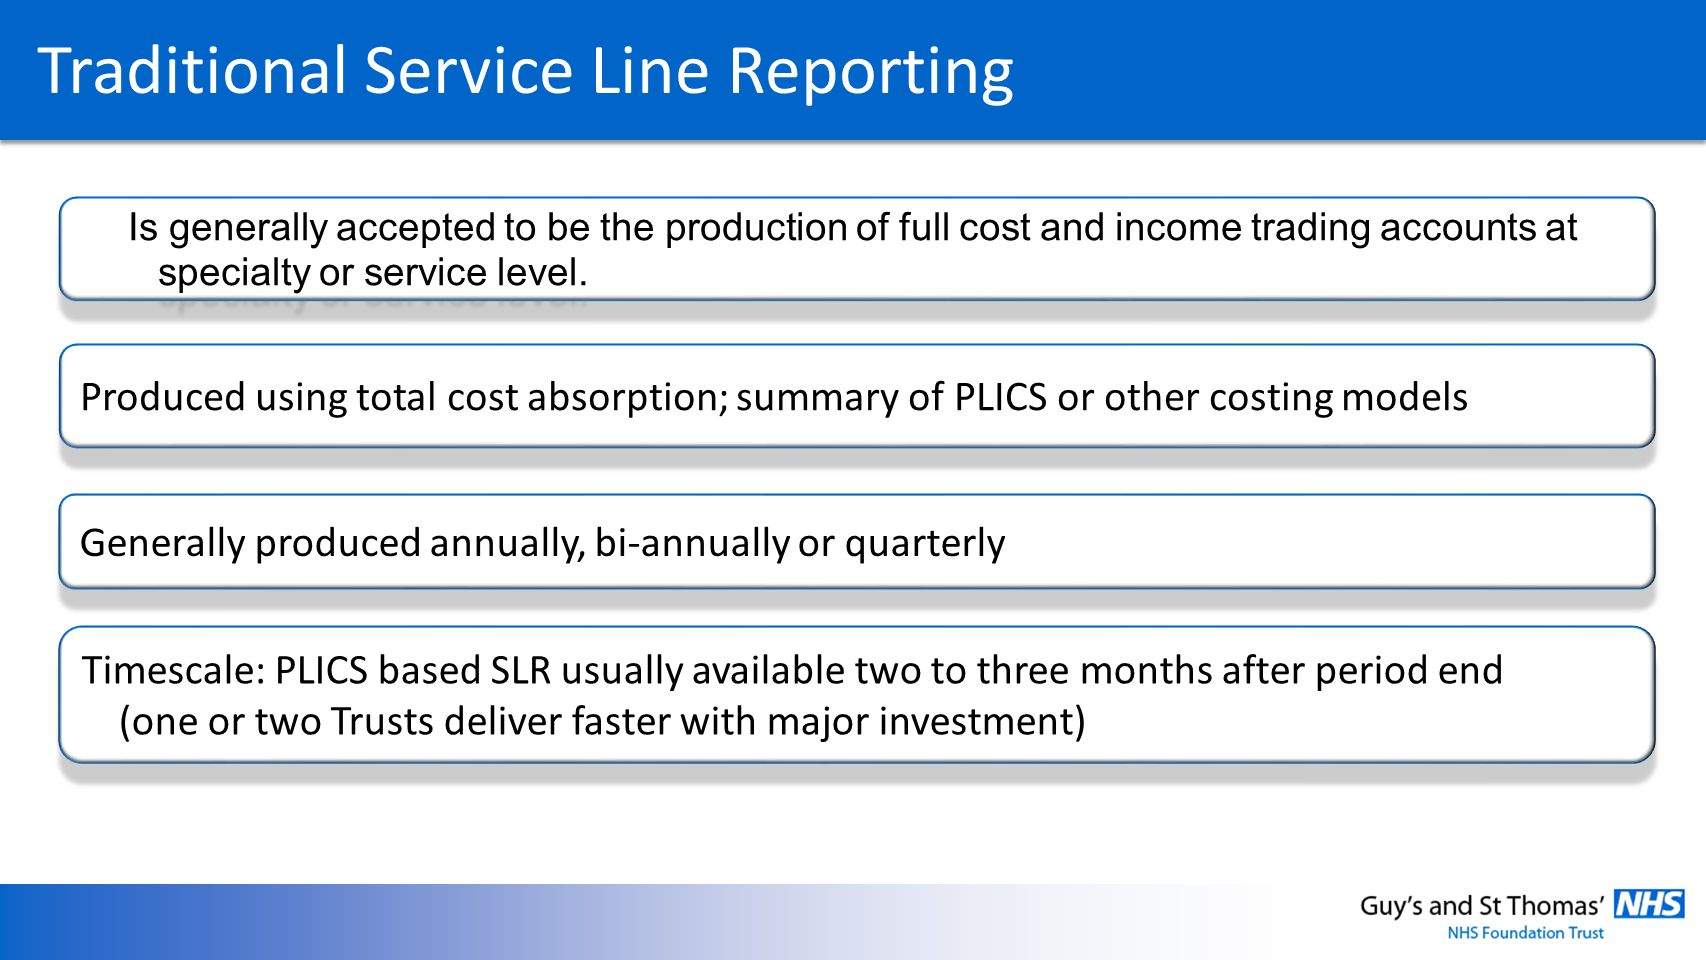 Traditional Service Line Reporting